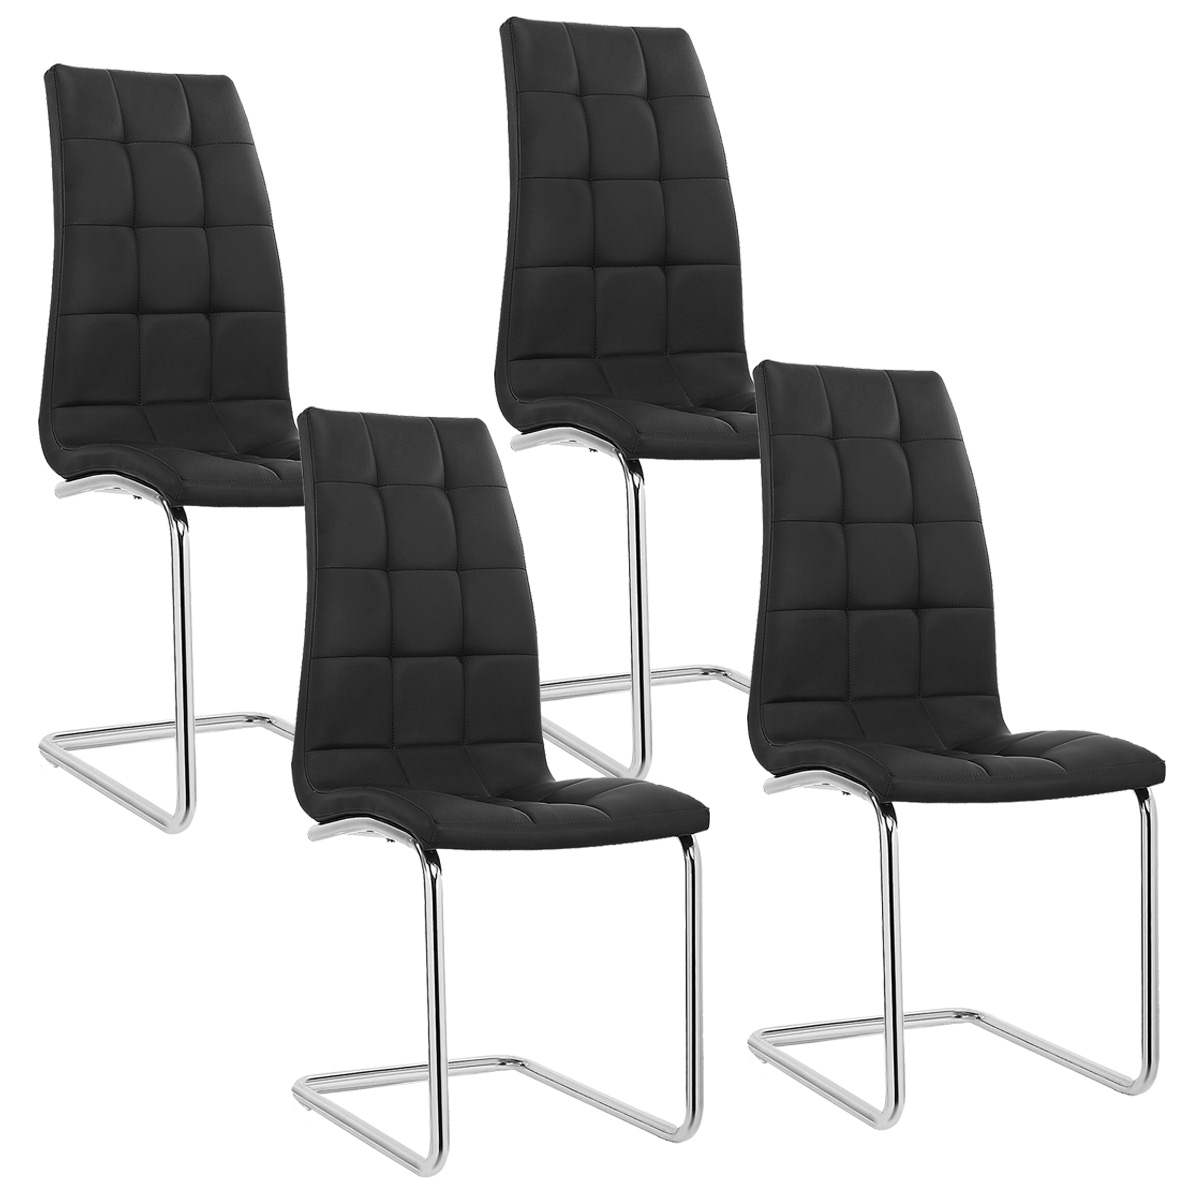 Deco in paris lot de 4 chaises noir design matelasse for Chaise noir design